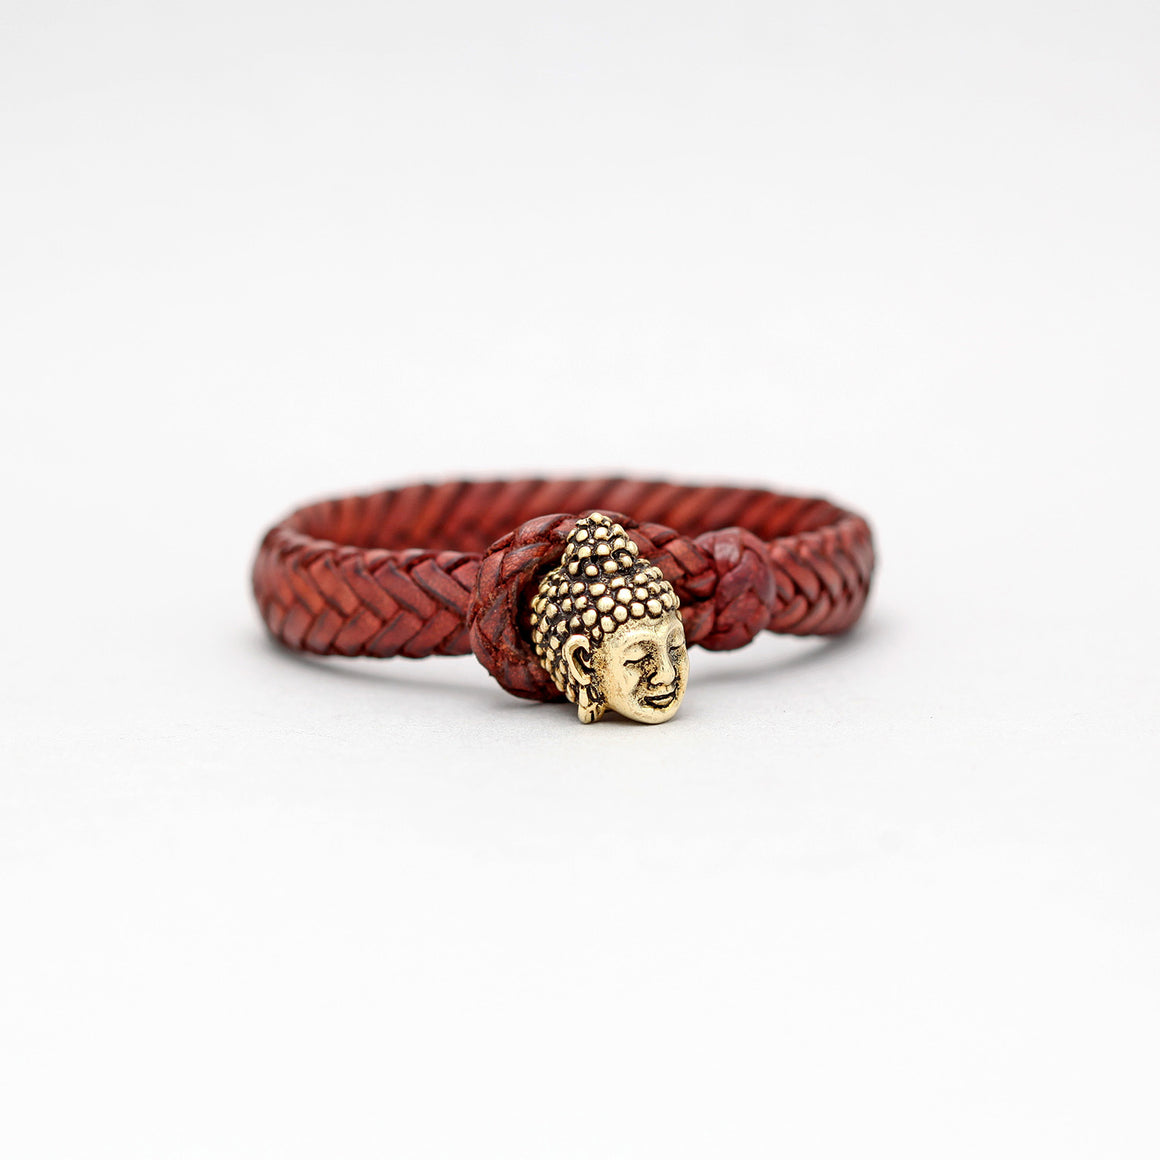 BRAIDED LEATHER BRACELET IN BROWN WITH YELLOW BRASS BUDDHA HEAD LOCK